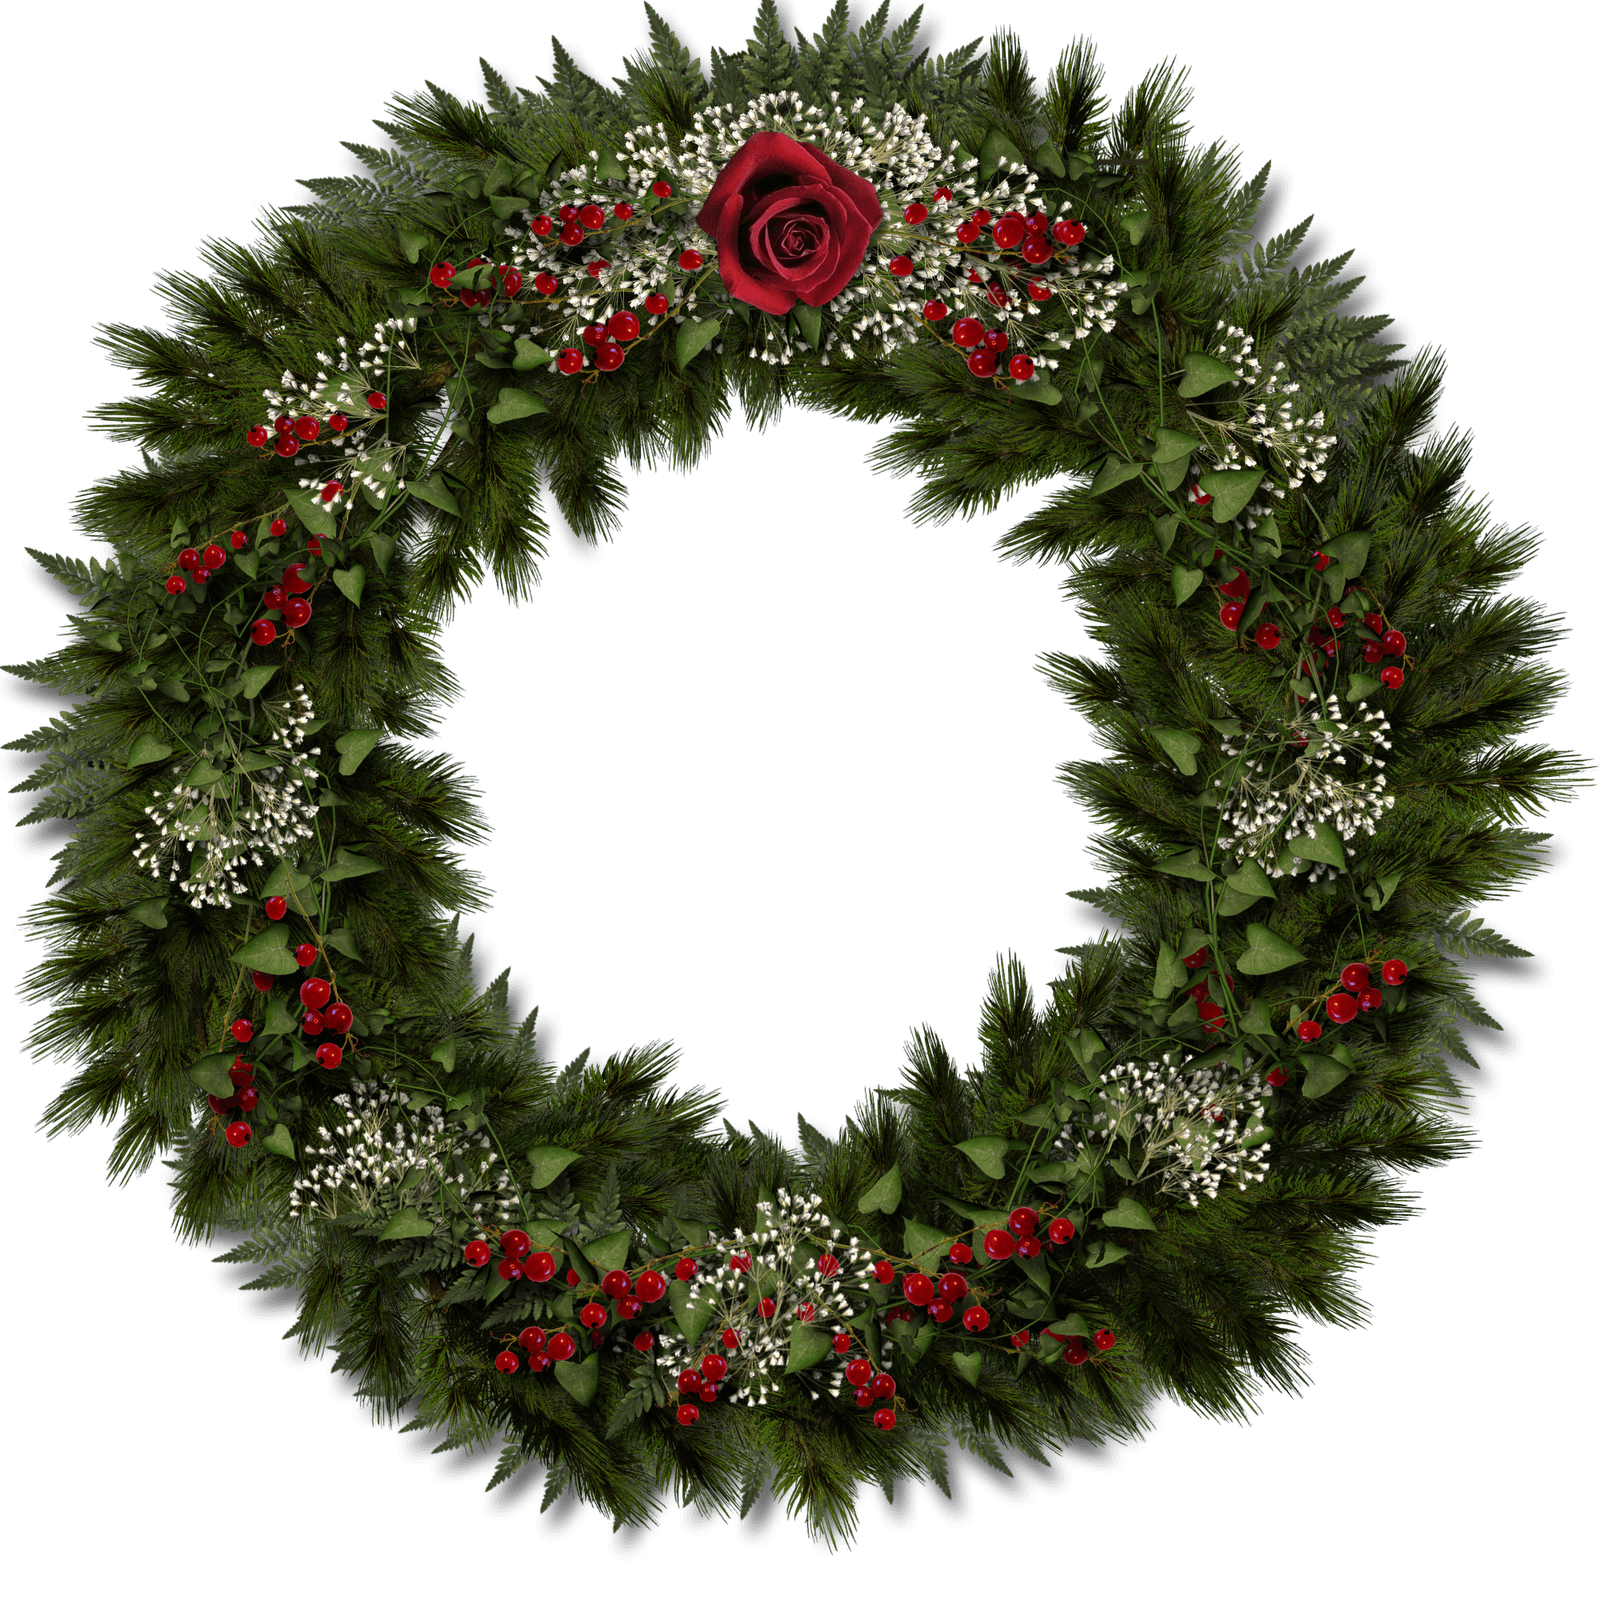 Christmas Door Decoration transparent PNG.